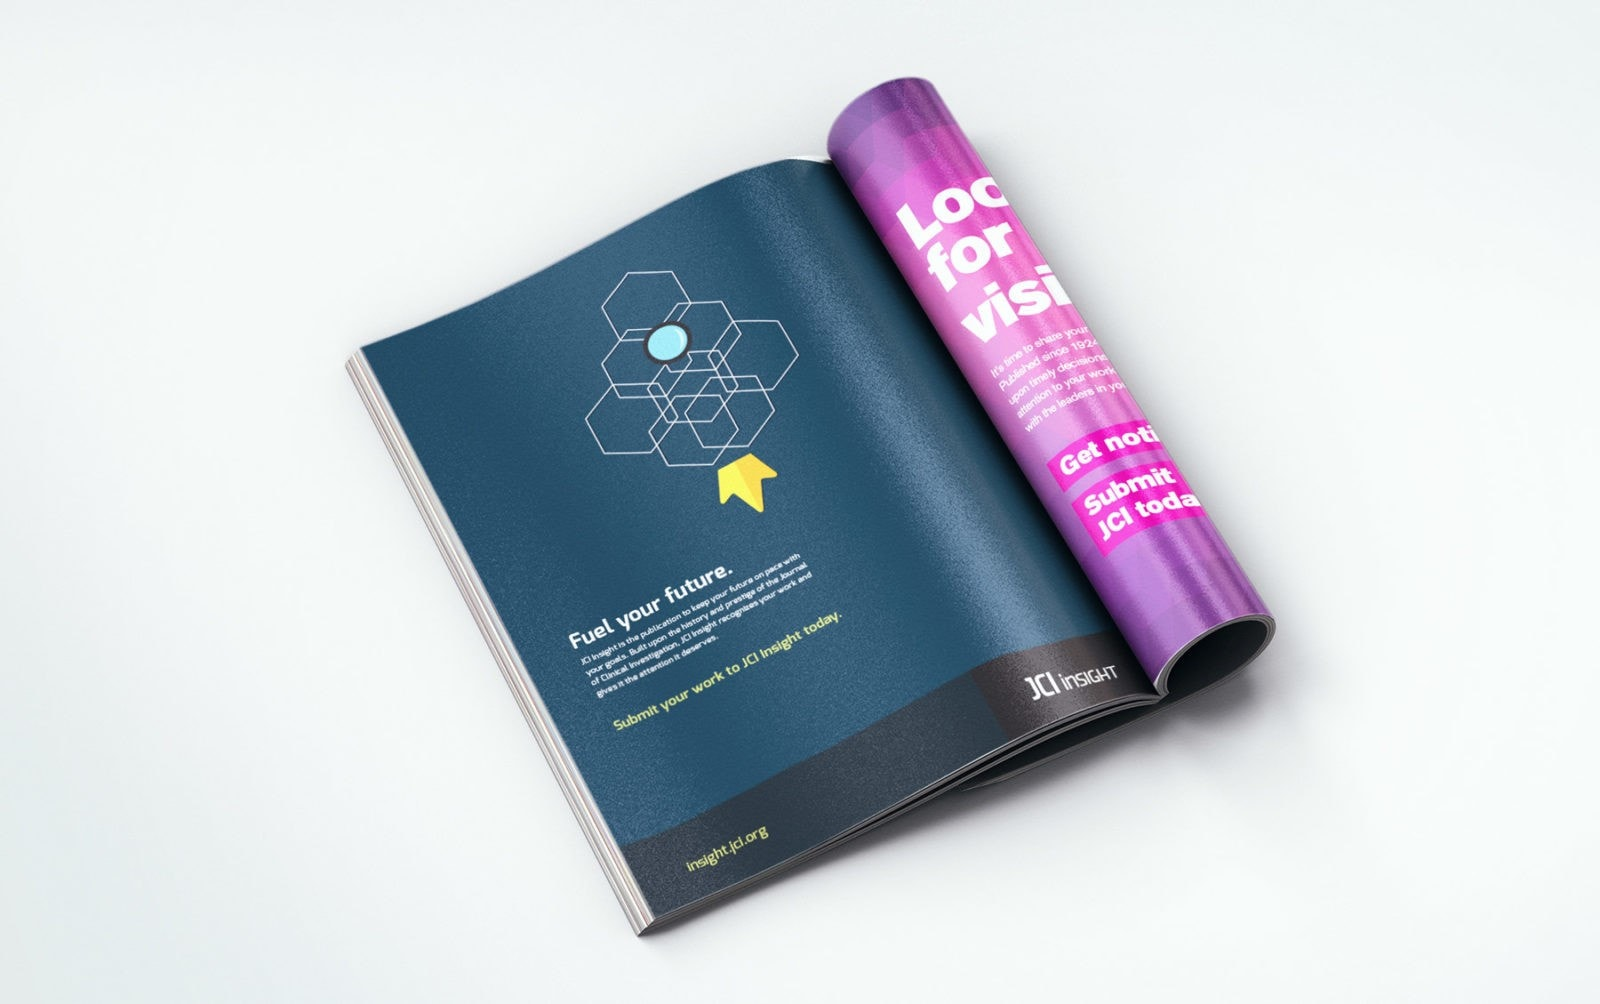 Advertising campaign concept and art direction by Clutch Creative Co. Burlington, VT. Medical journal advertising.